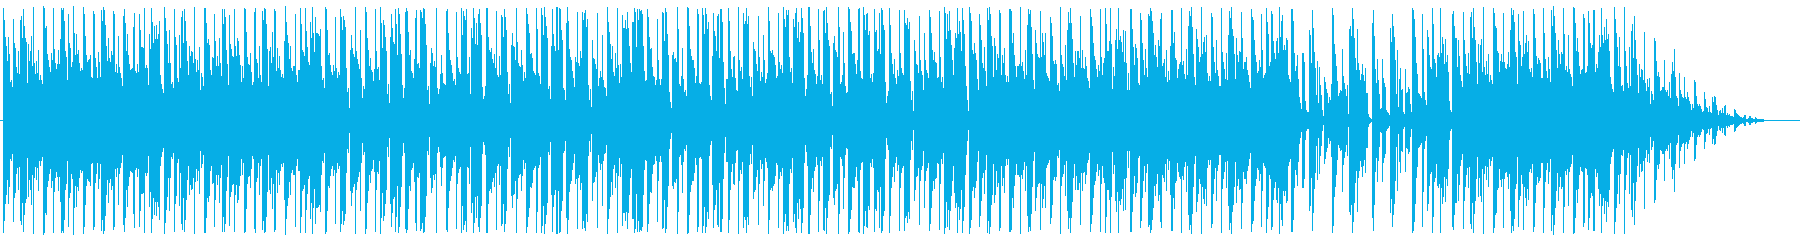 BGM with a calm mood's reproduced waveform